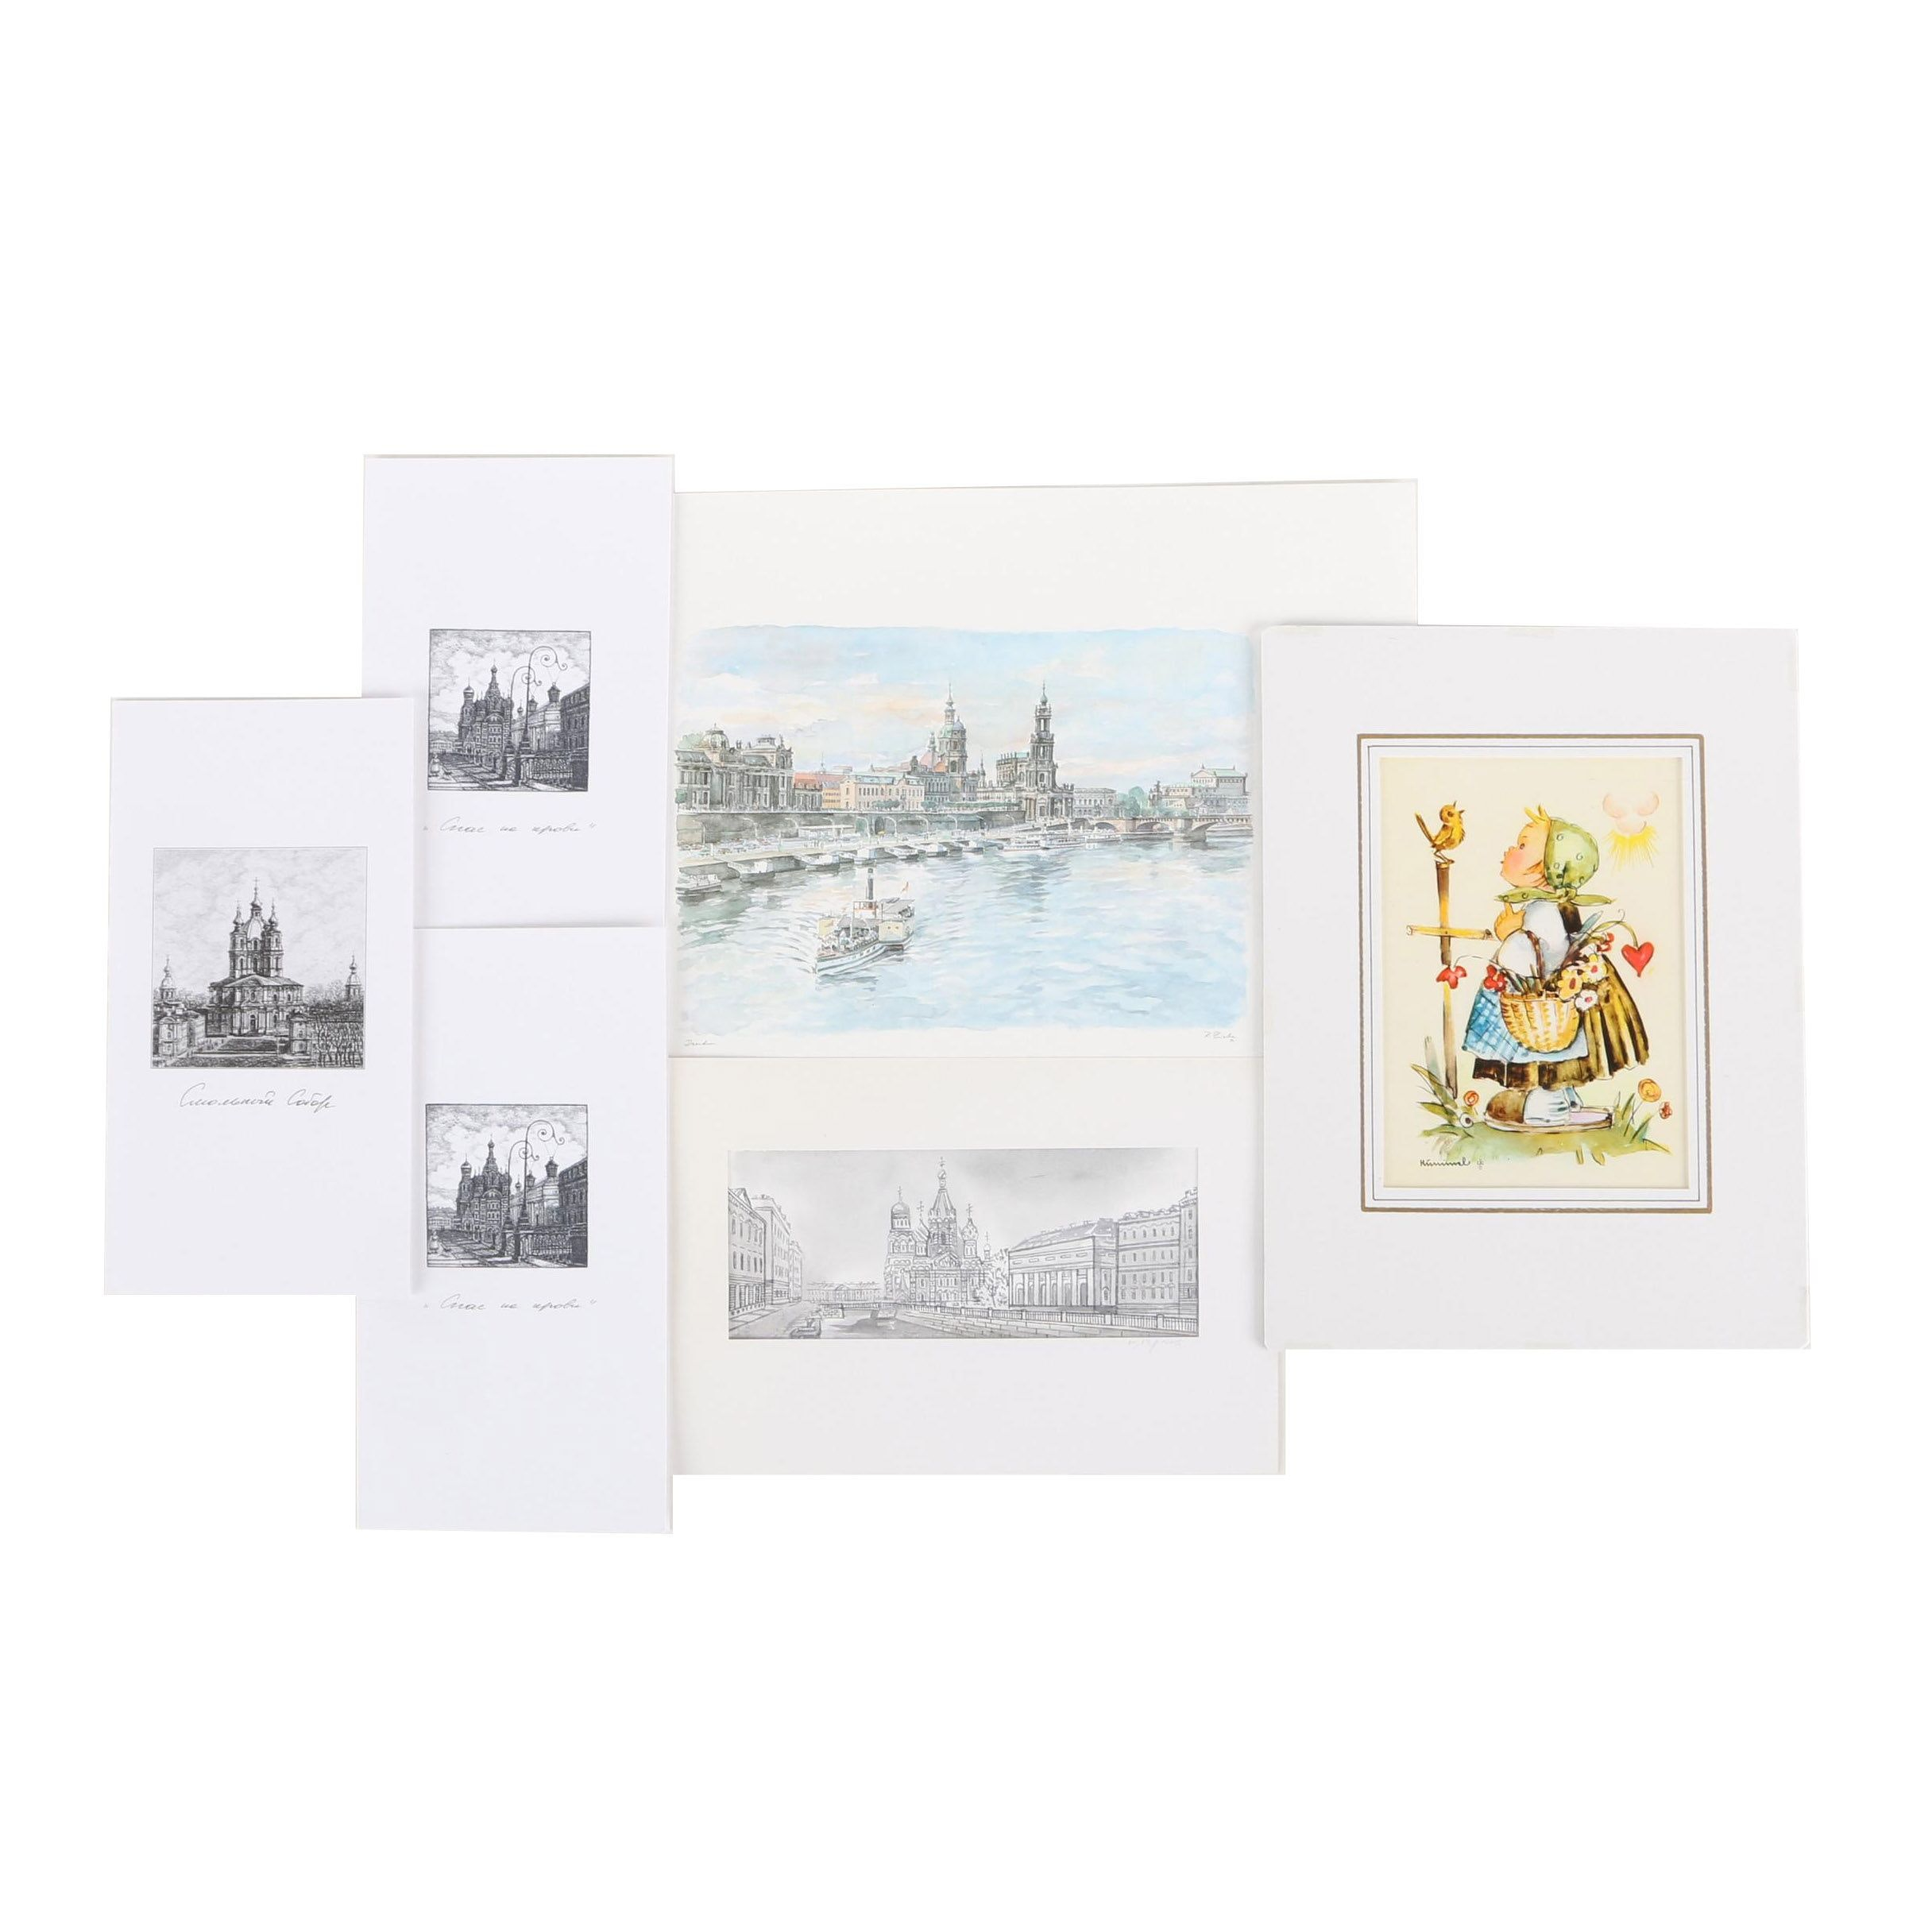 Offset Lithograph Landscapes with Offset Lithograph of Hummel Figure